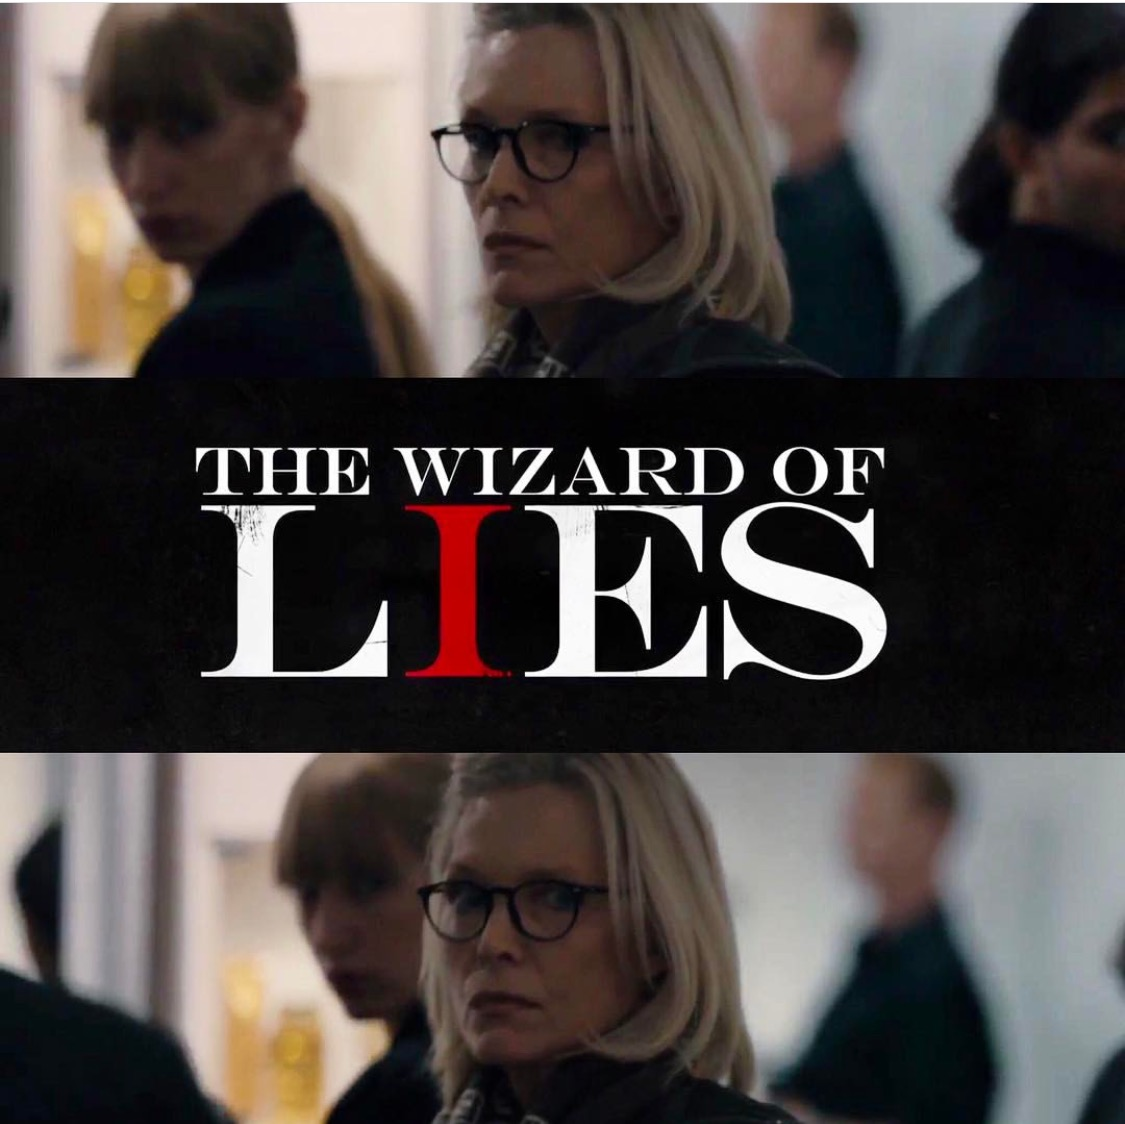 Madoff family secrets and the wizard of lies